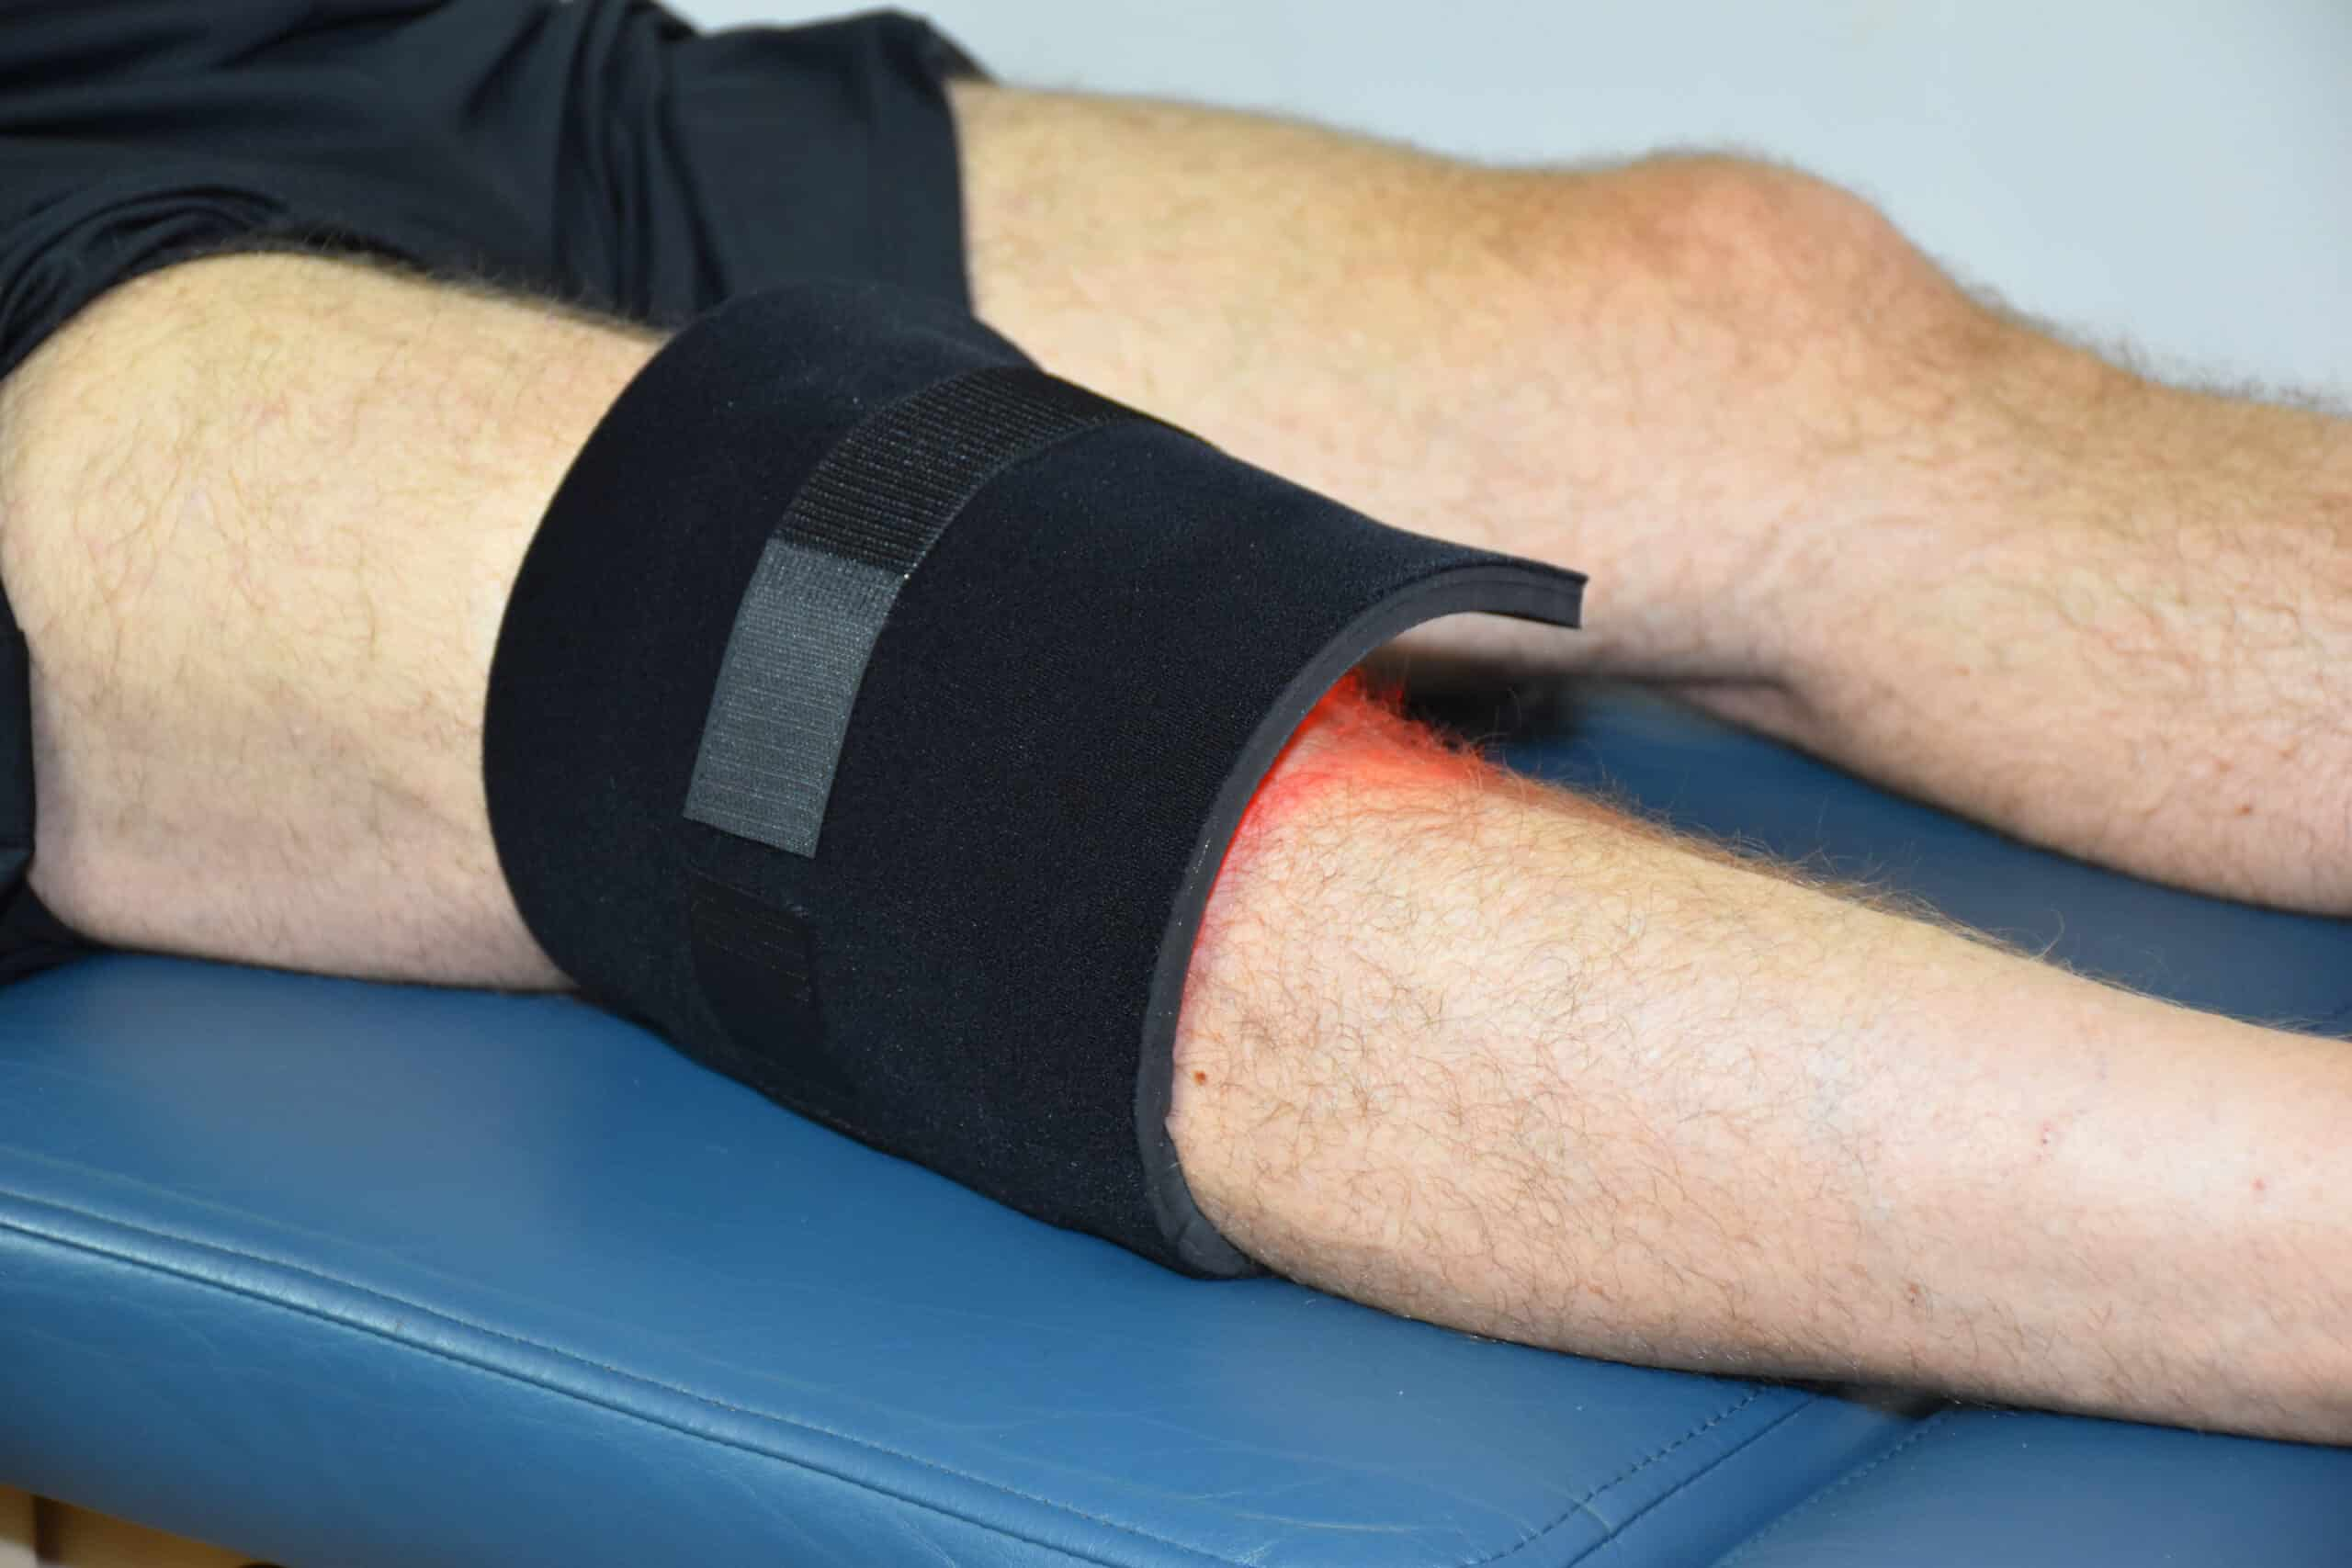 NIR Light Therapy on the Knee